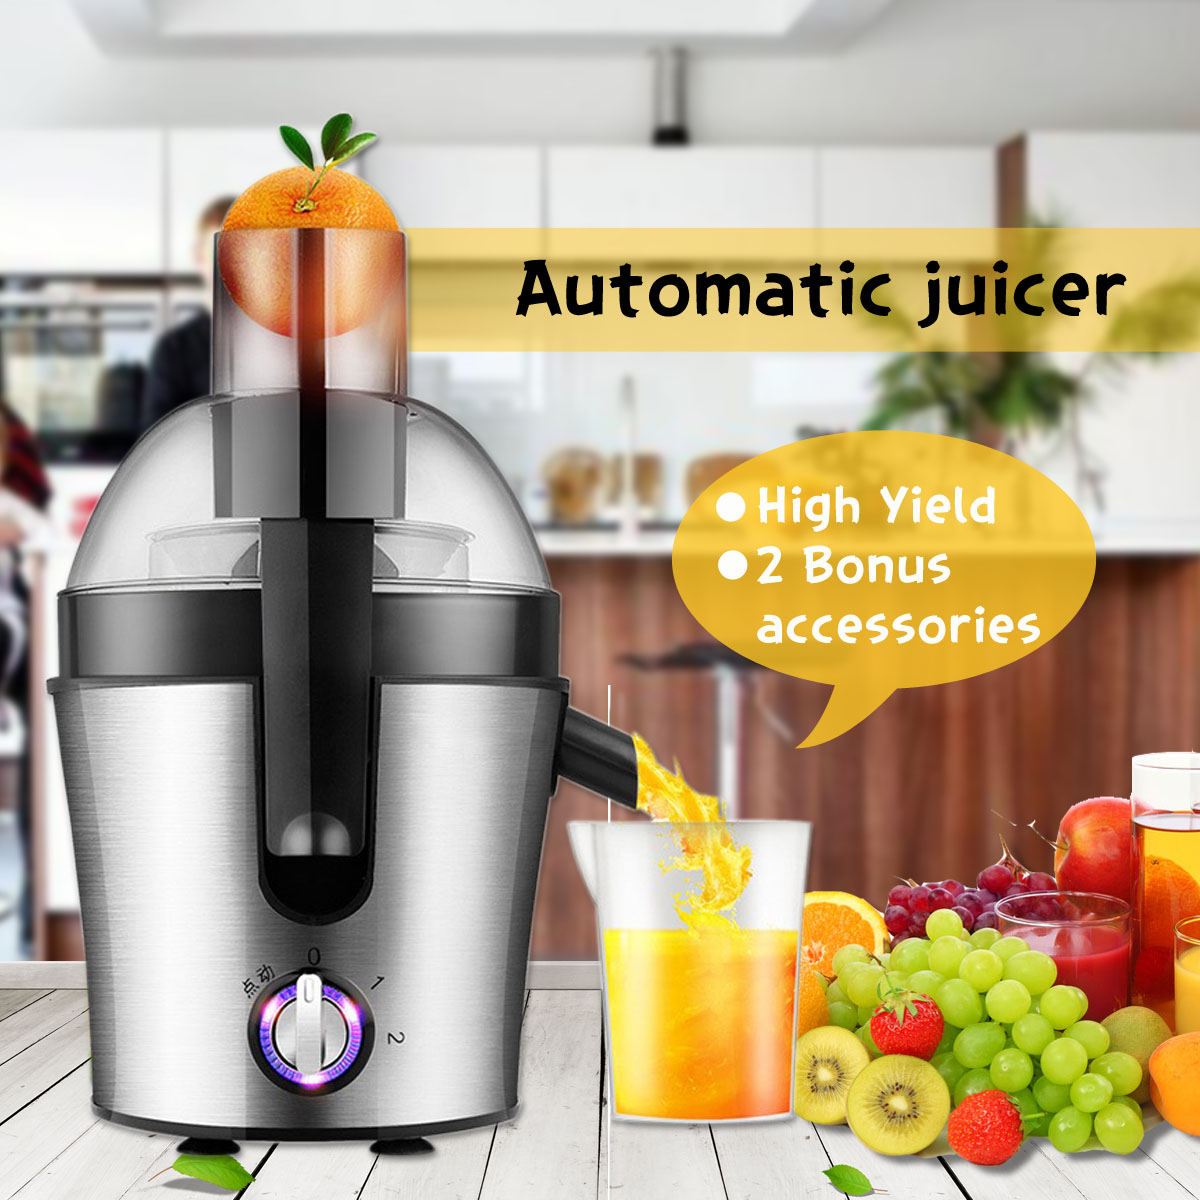 Warmtoo 220V 300W Stainless Steel Juicer Fruit Vegetable Processor Extractor Mixer High Power Fruit Food Processor Ice SmoothieWarmtoo 220V 300W Stainless Steel Juicer Fruit Vegetable Processor Extractor Mixer High Power Fruit Food Processor Ice Smoothie